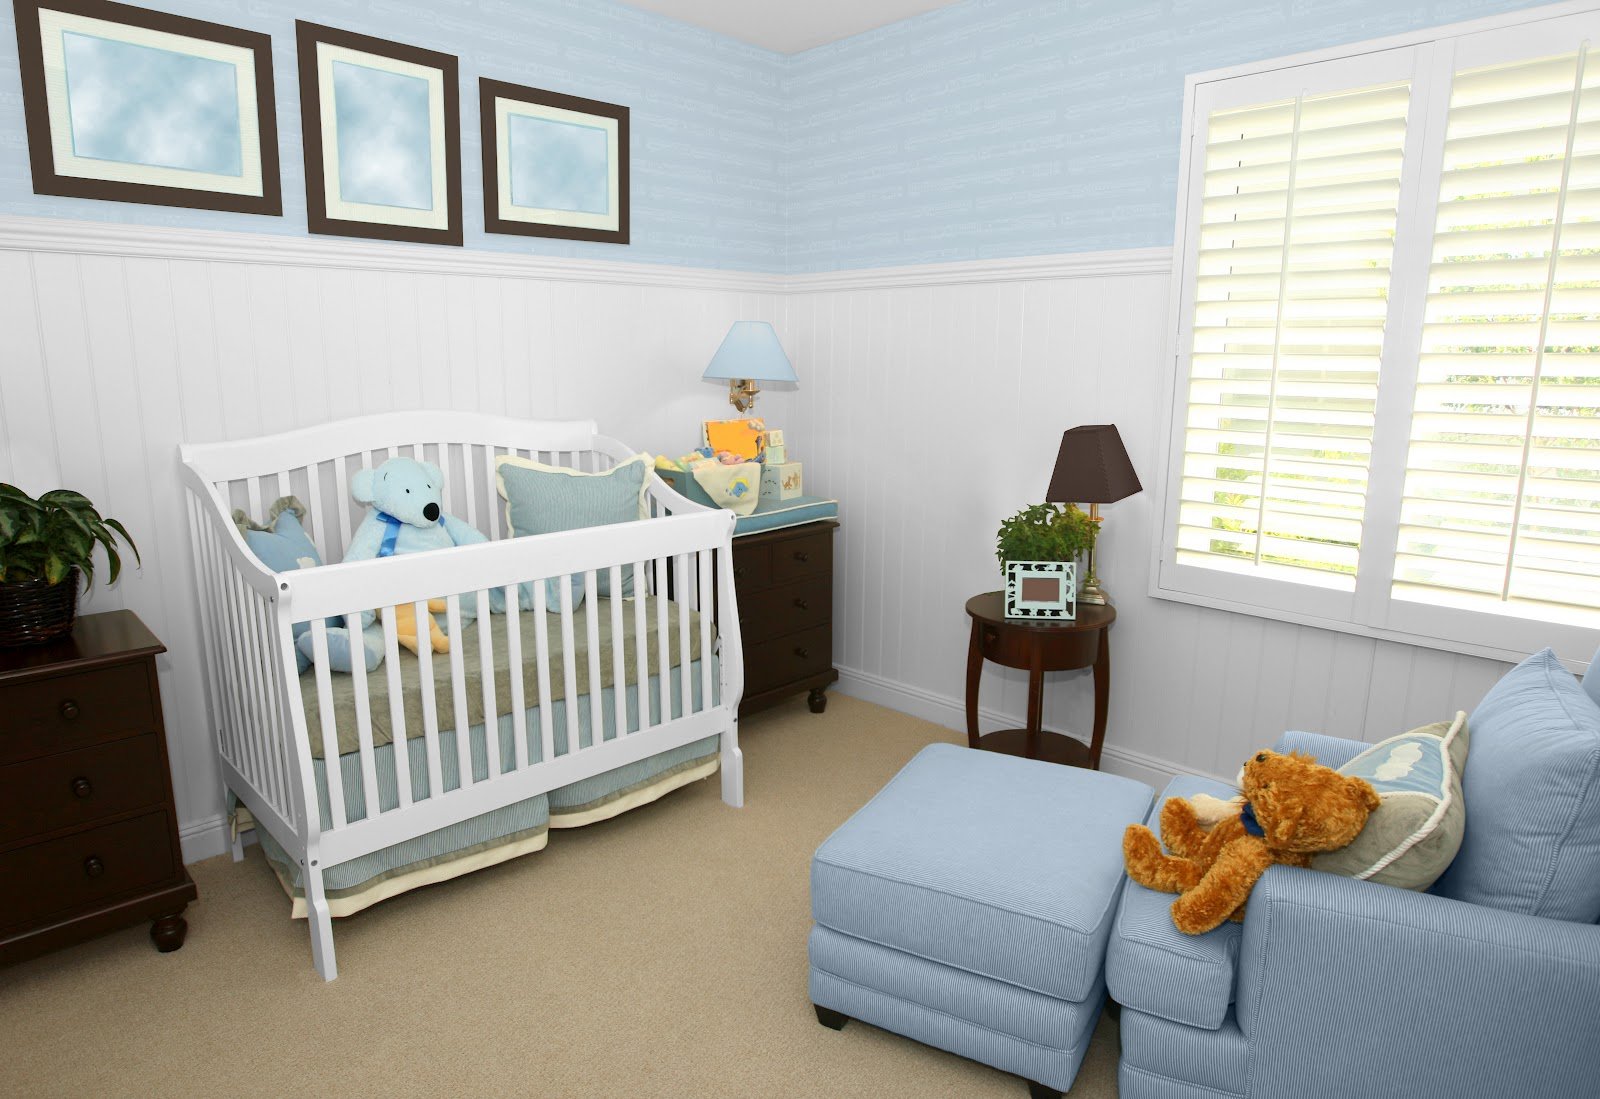 Top 10 baby nursery room colors and decorating ideas for Nursery room ideas for small rooms